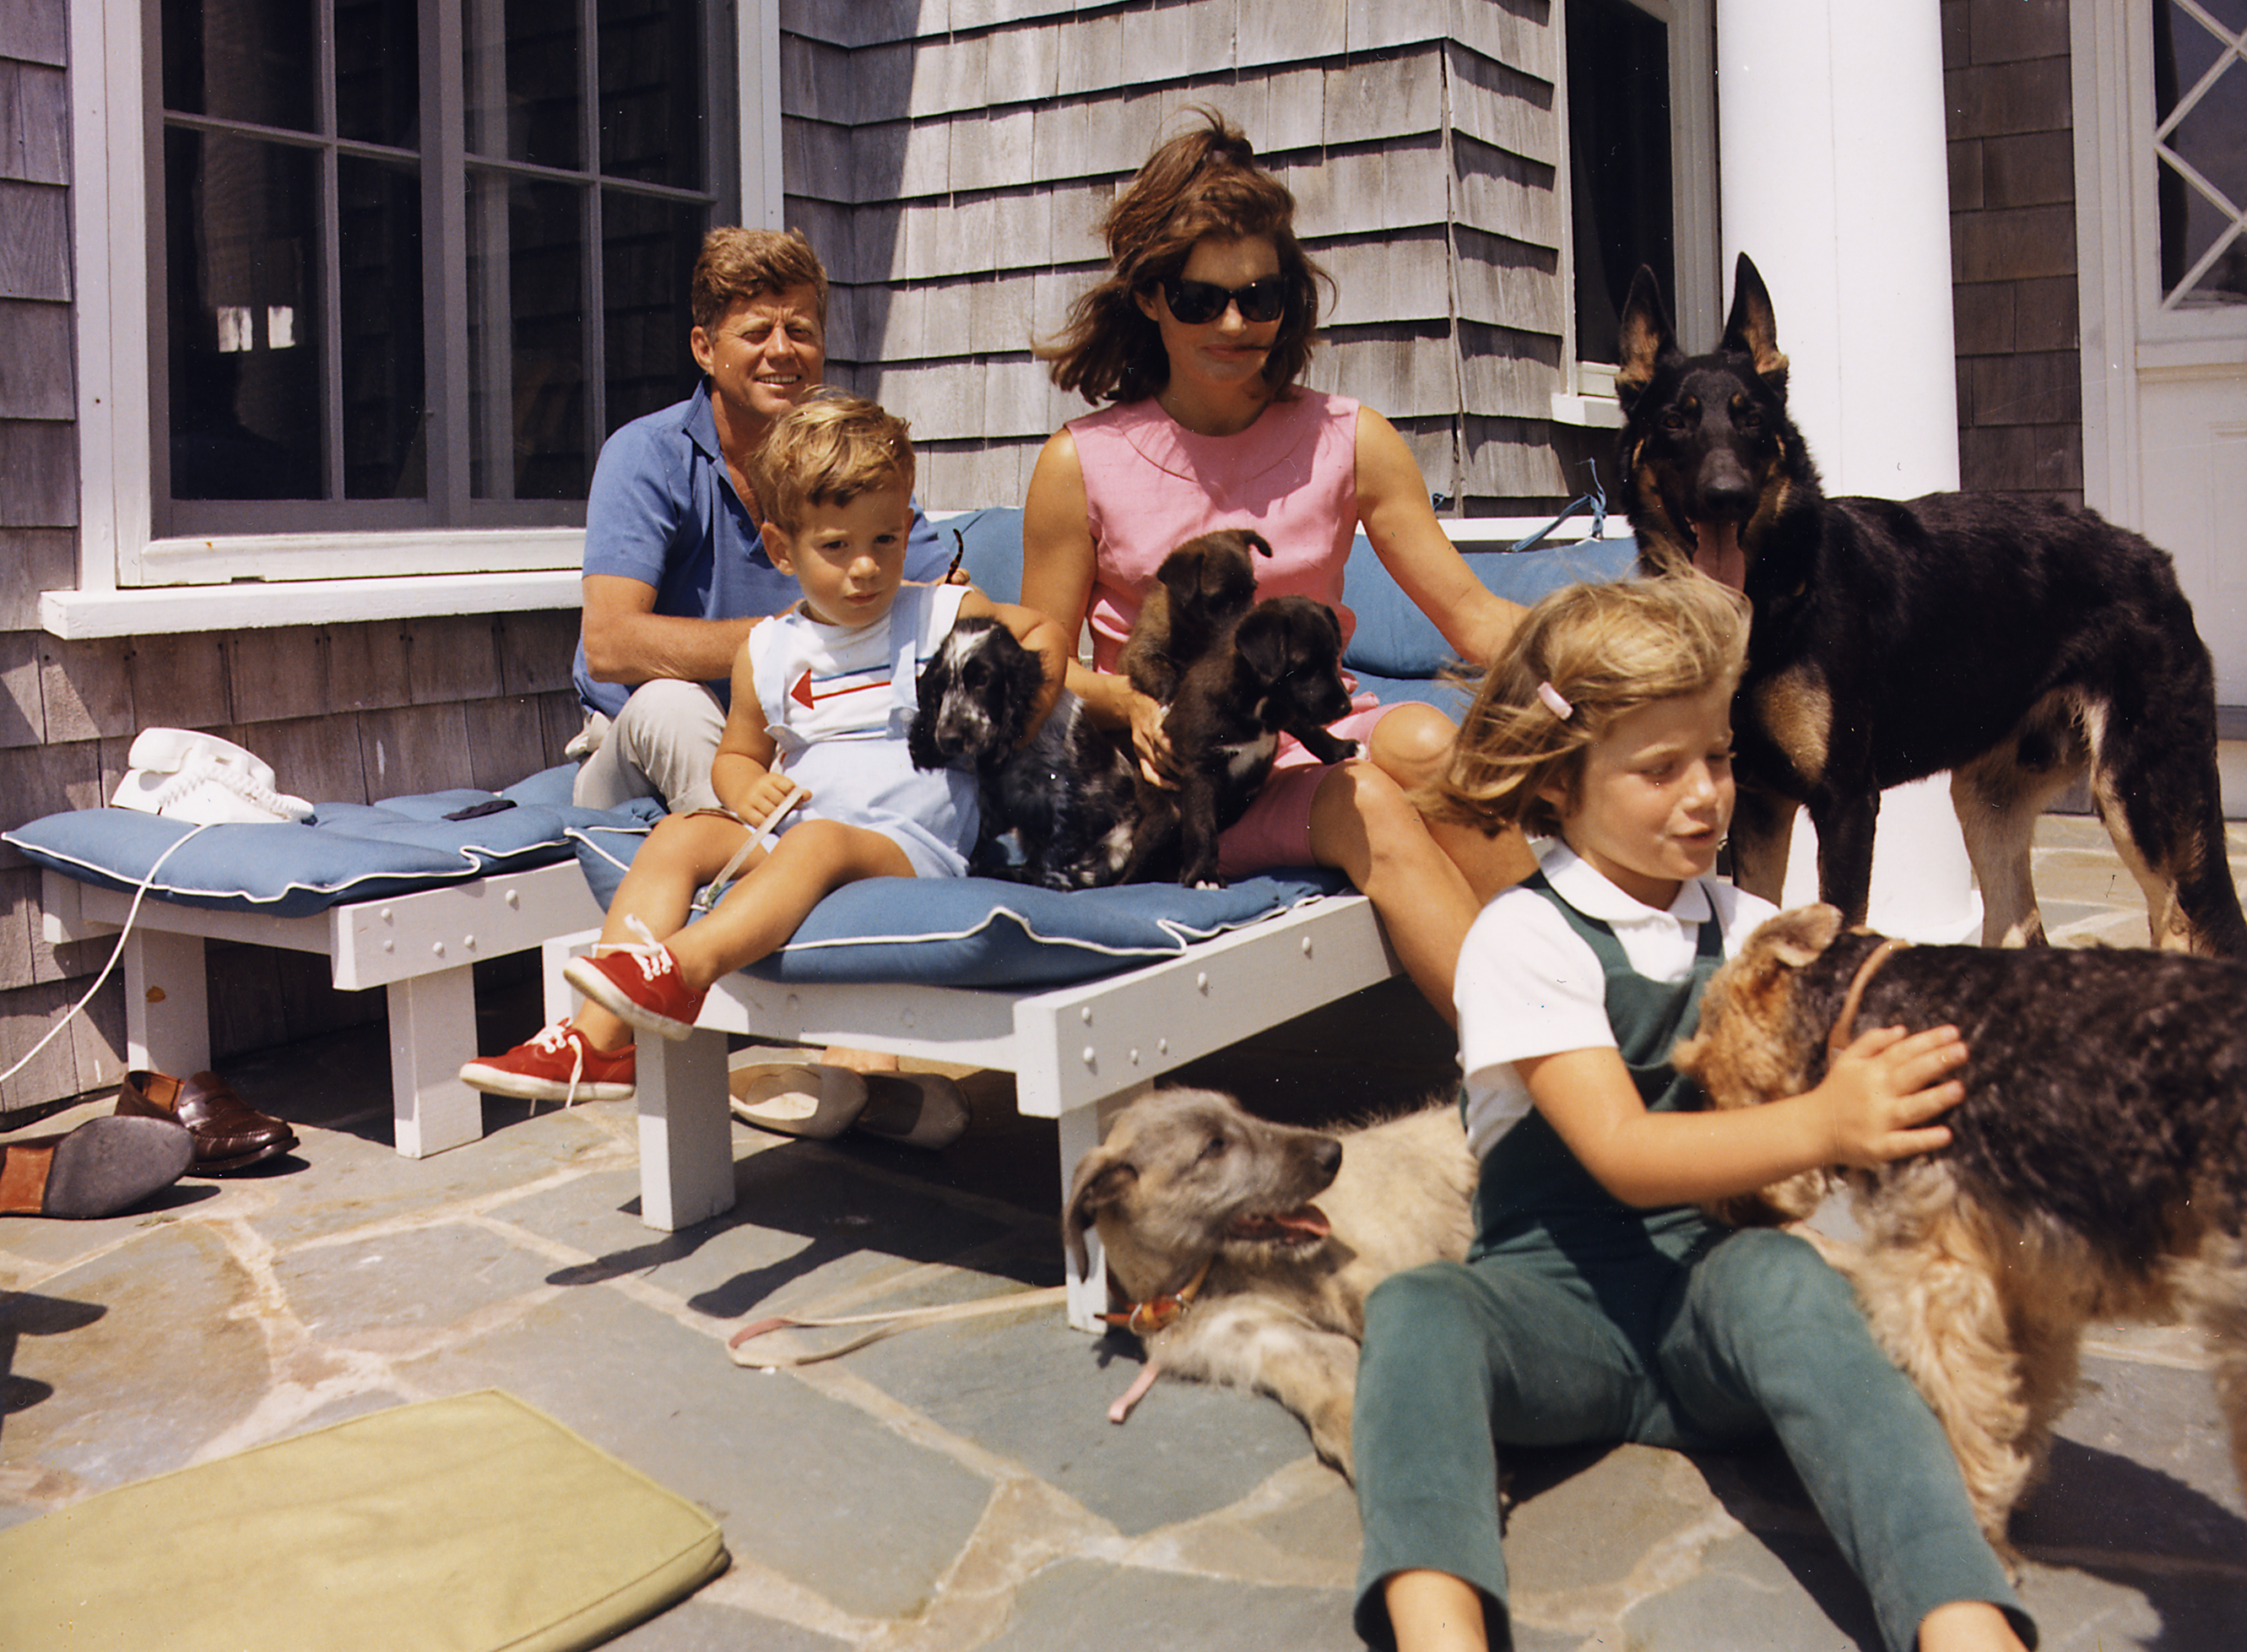 The Kennedy family with their dogs in Hyannisport, 1963.